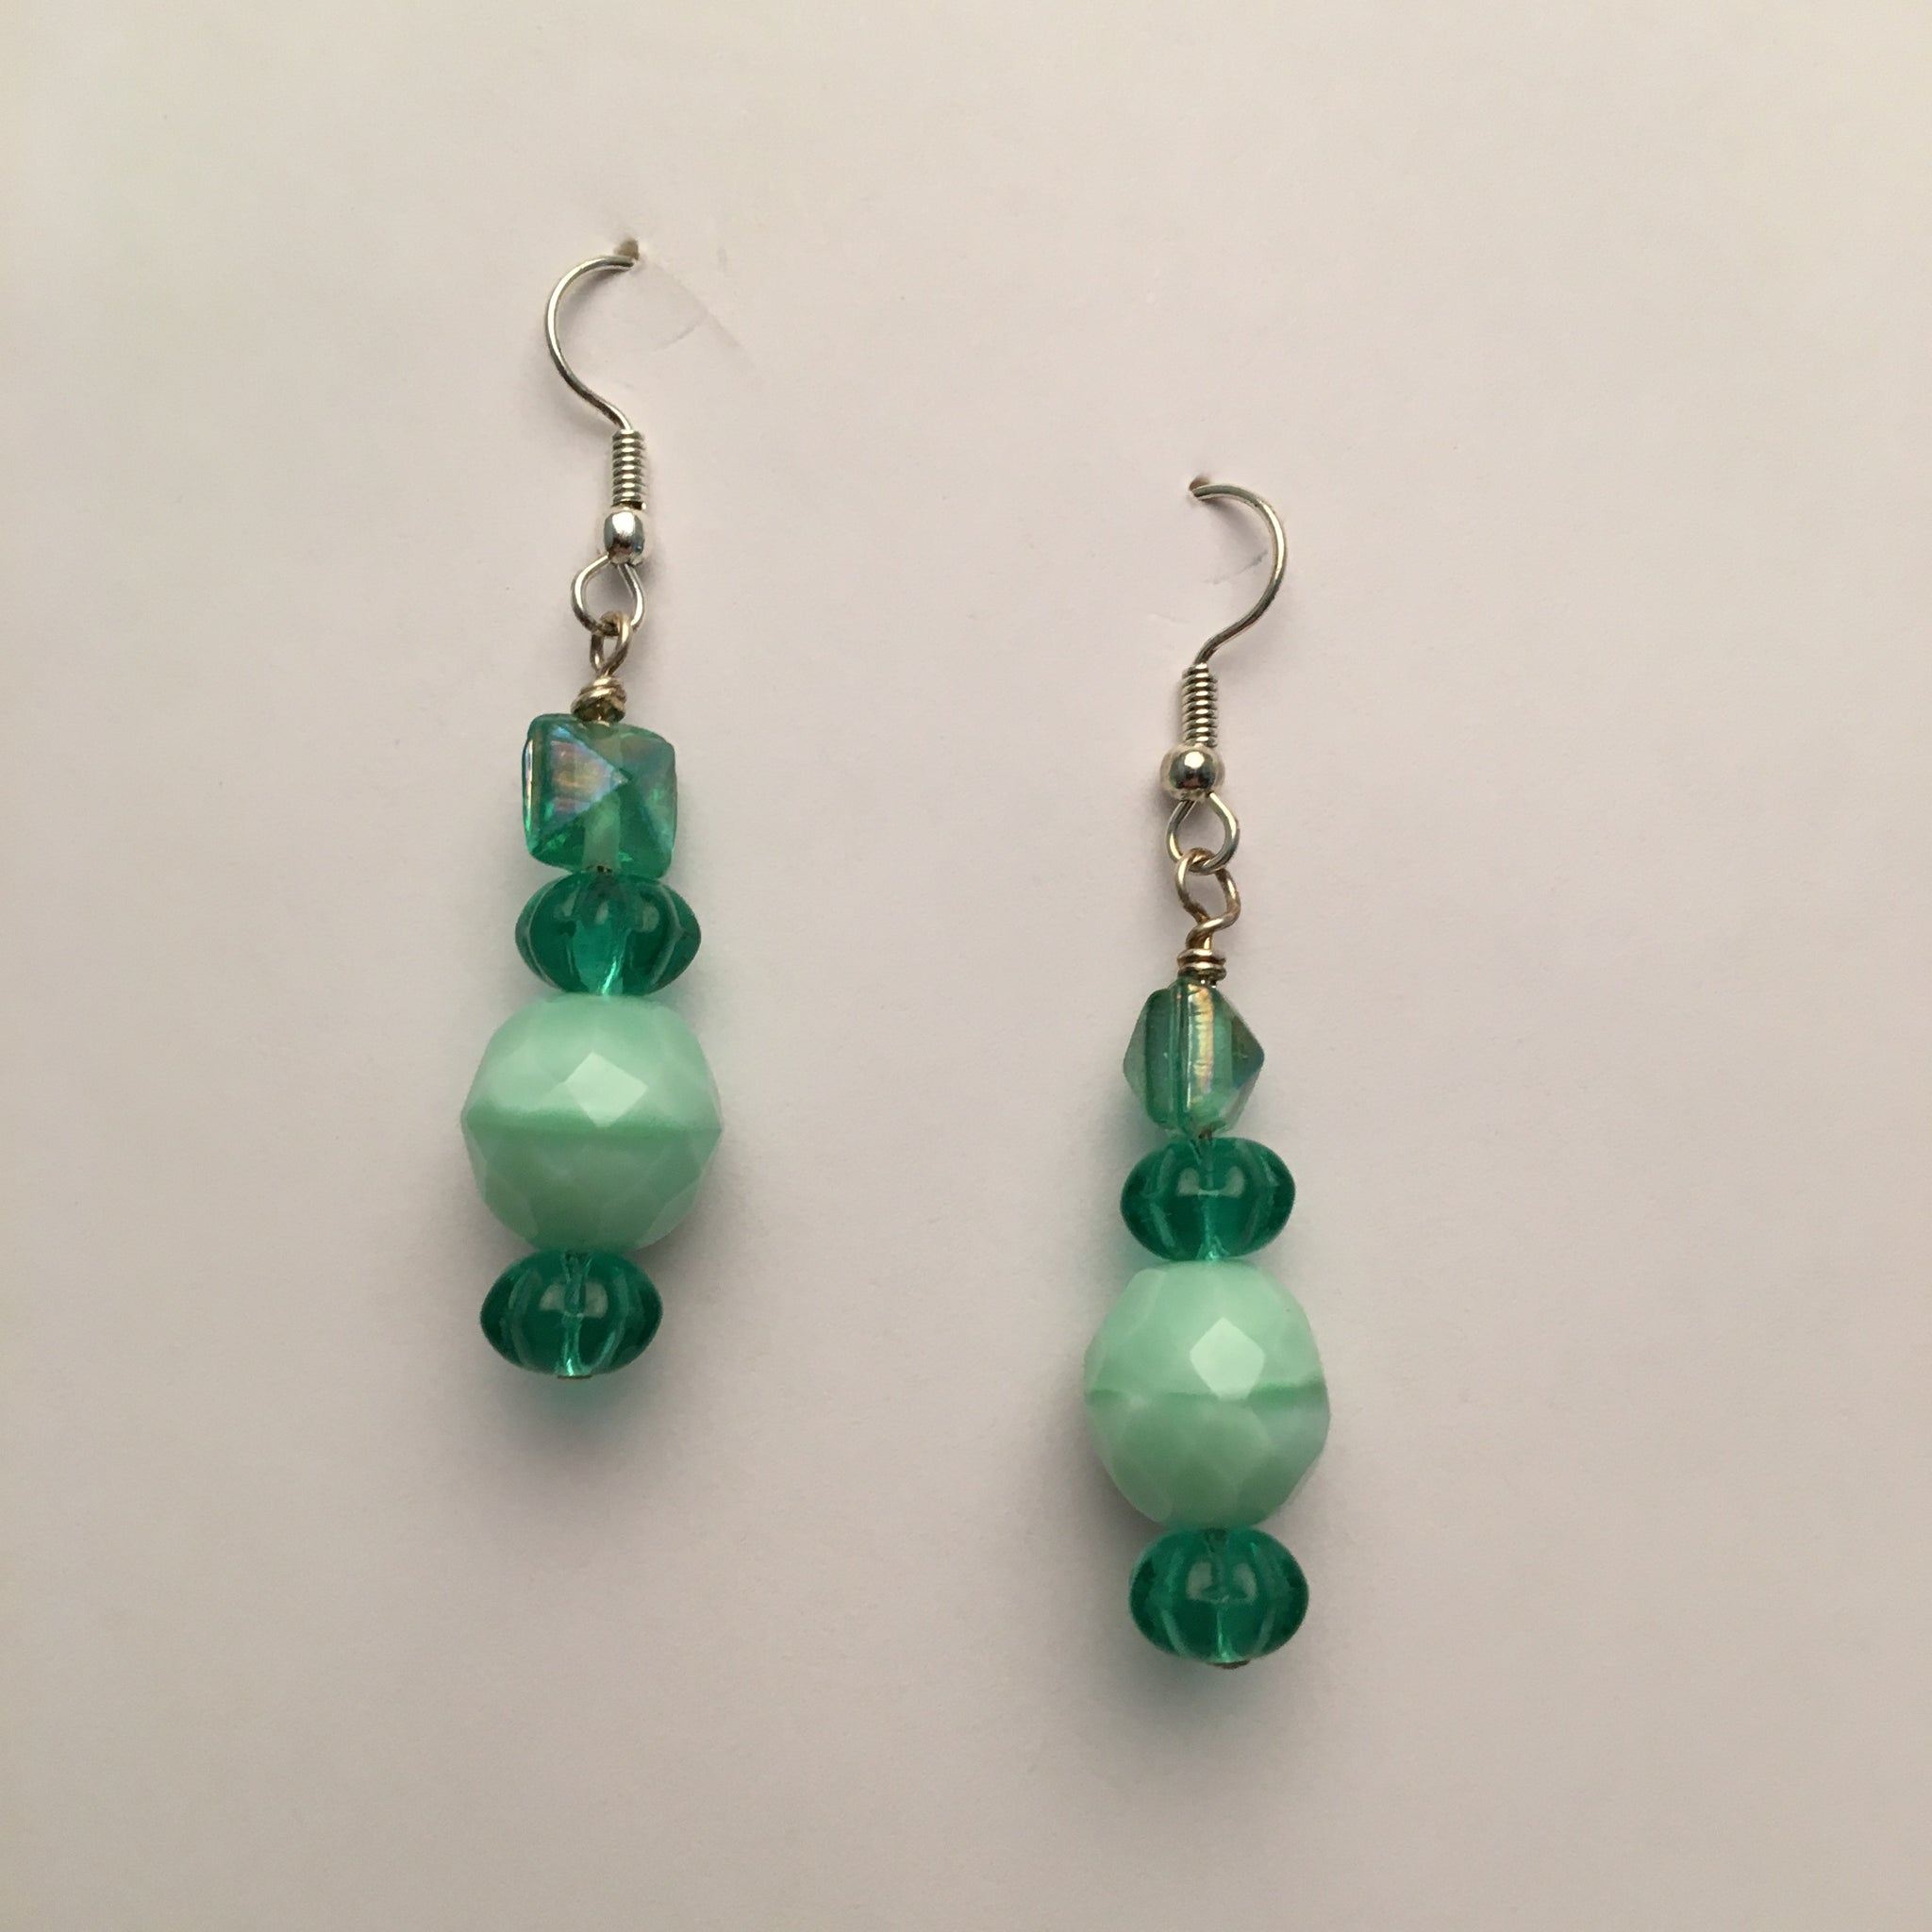 Vintage Beaded Earrings #2